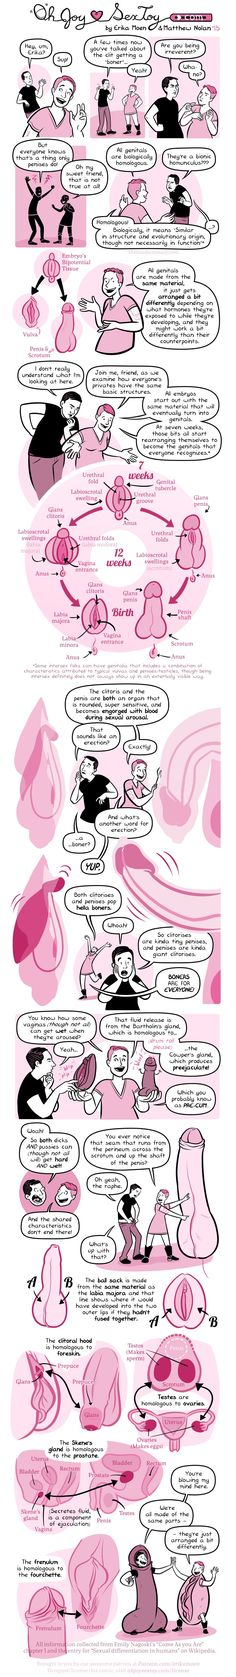 Curious about human genitalia? Even if the answer is no - this comic is pretty fascinating.